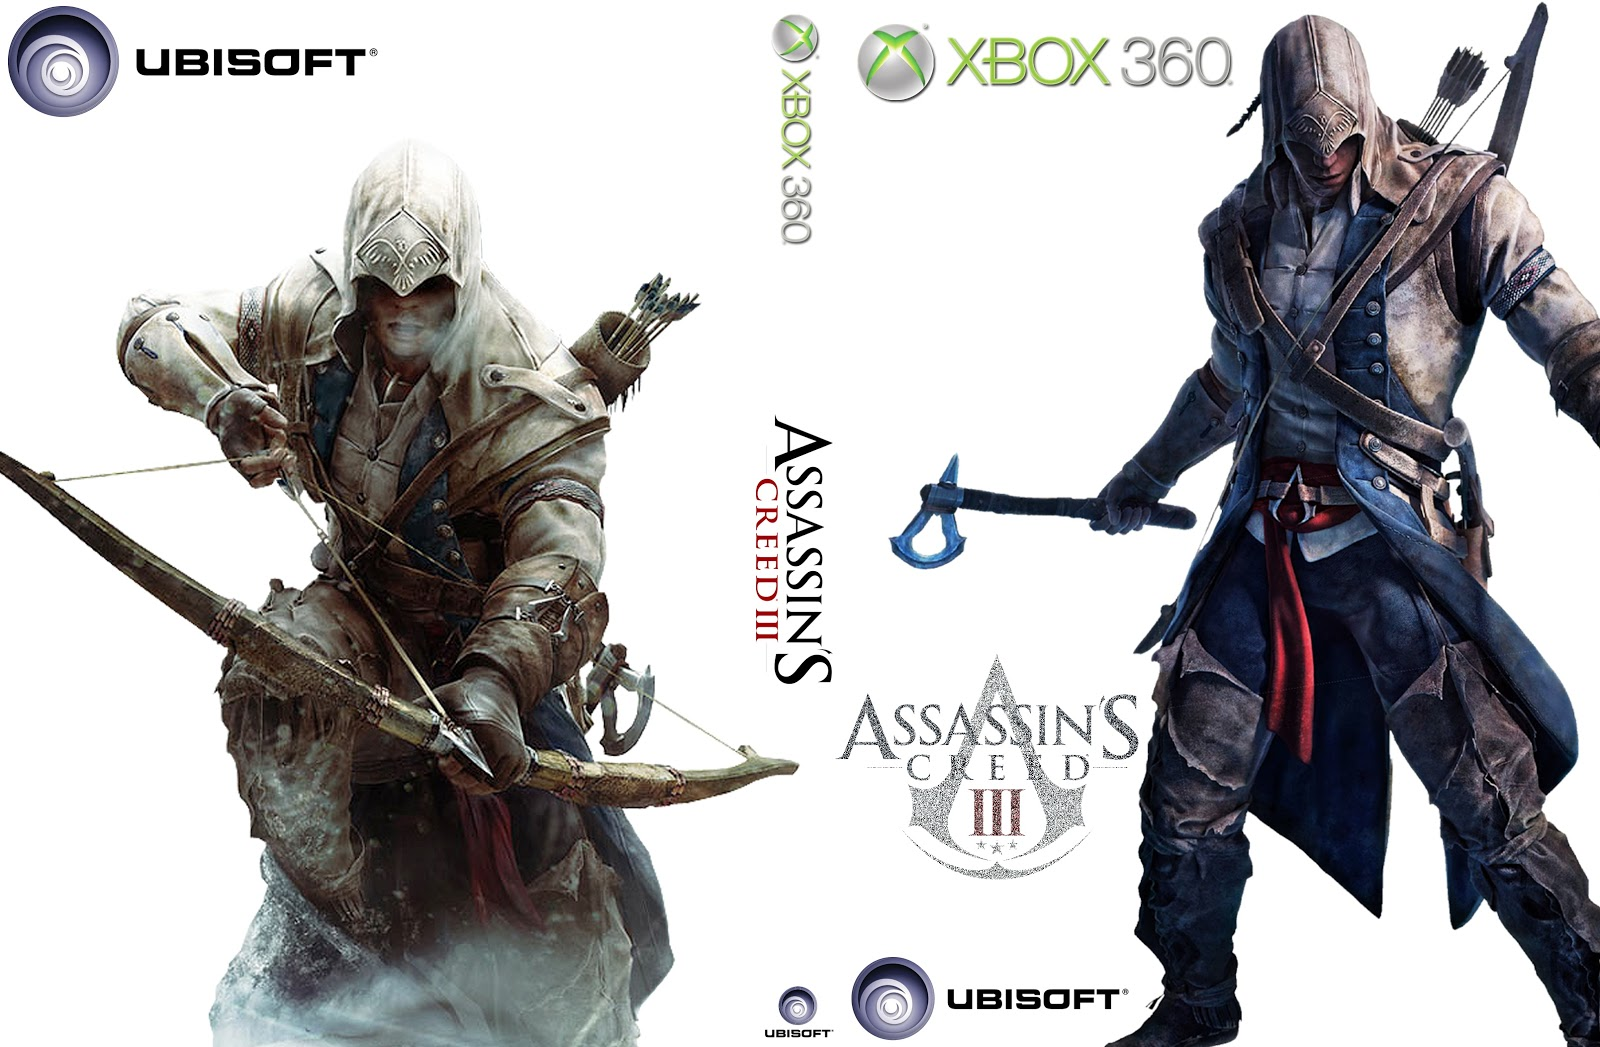 Capa Assassins Creed III Xbox 360